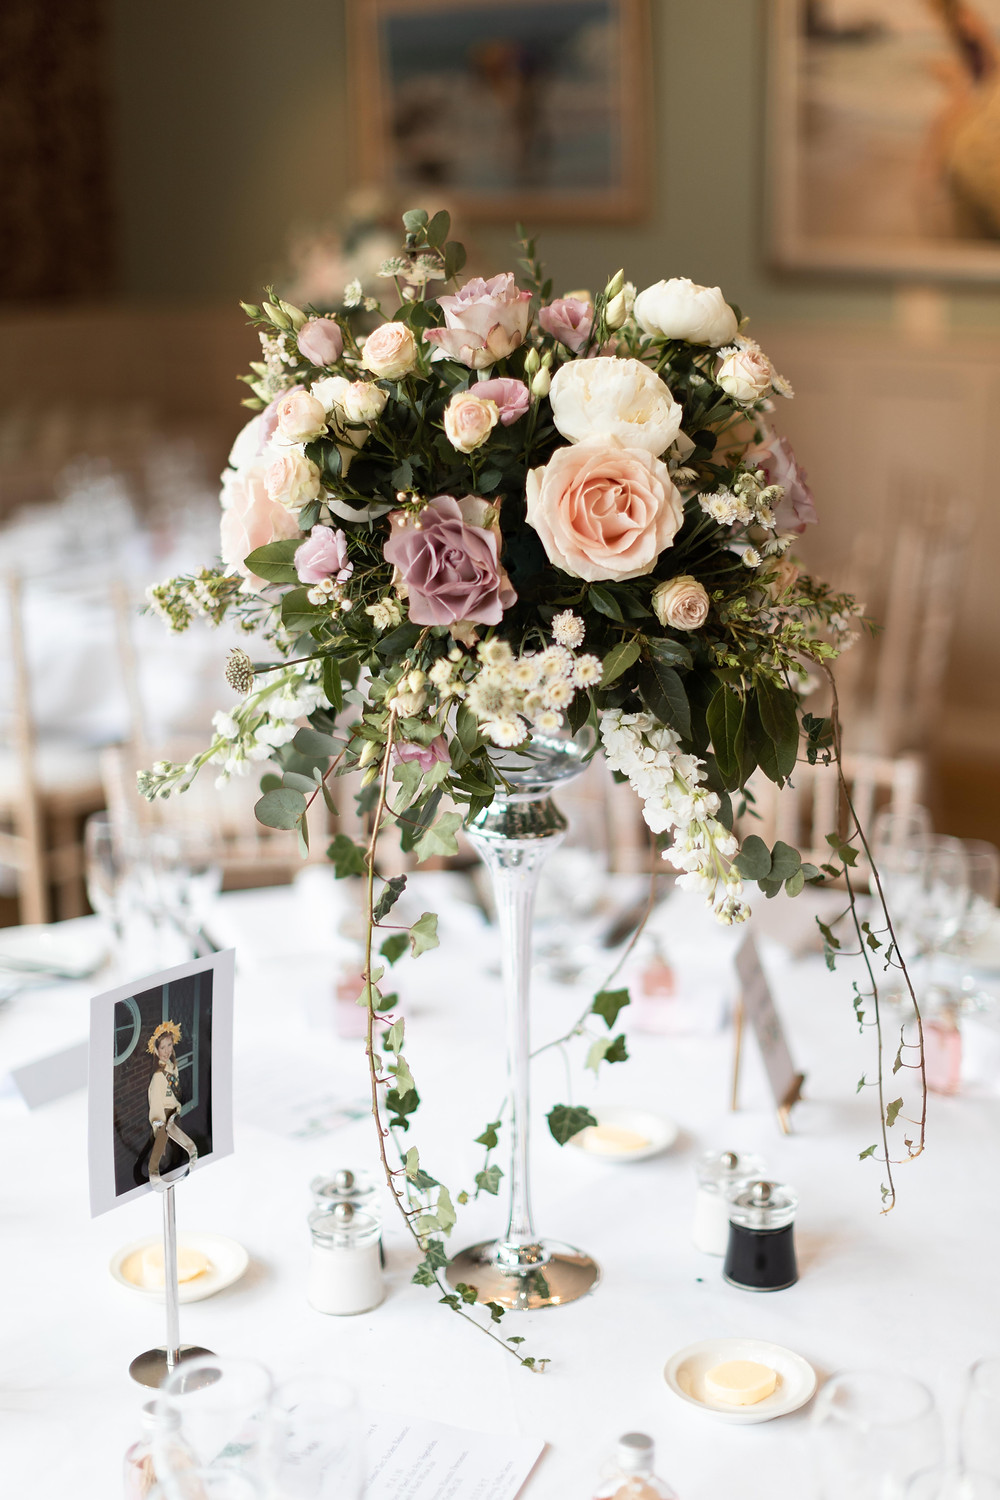 Wedding details: flowers on the tables